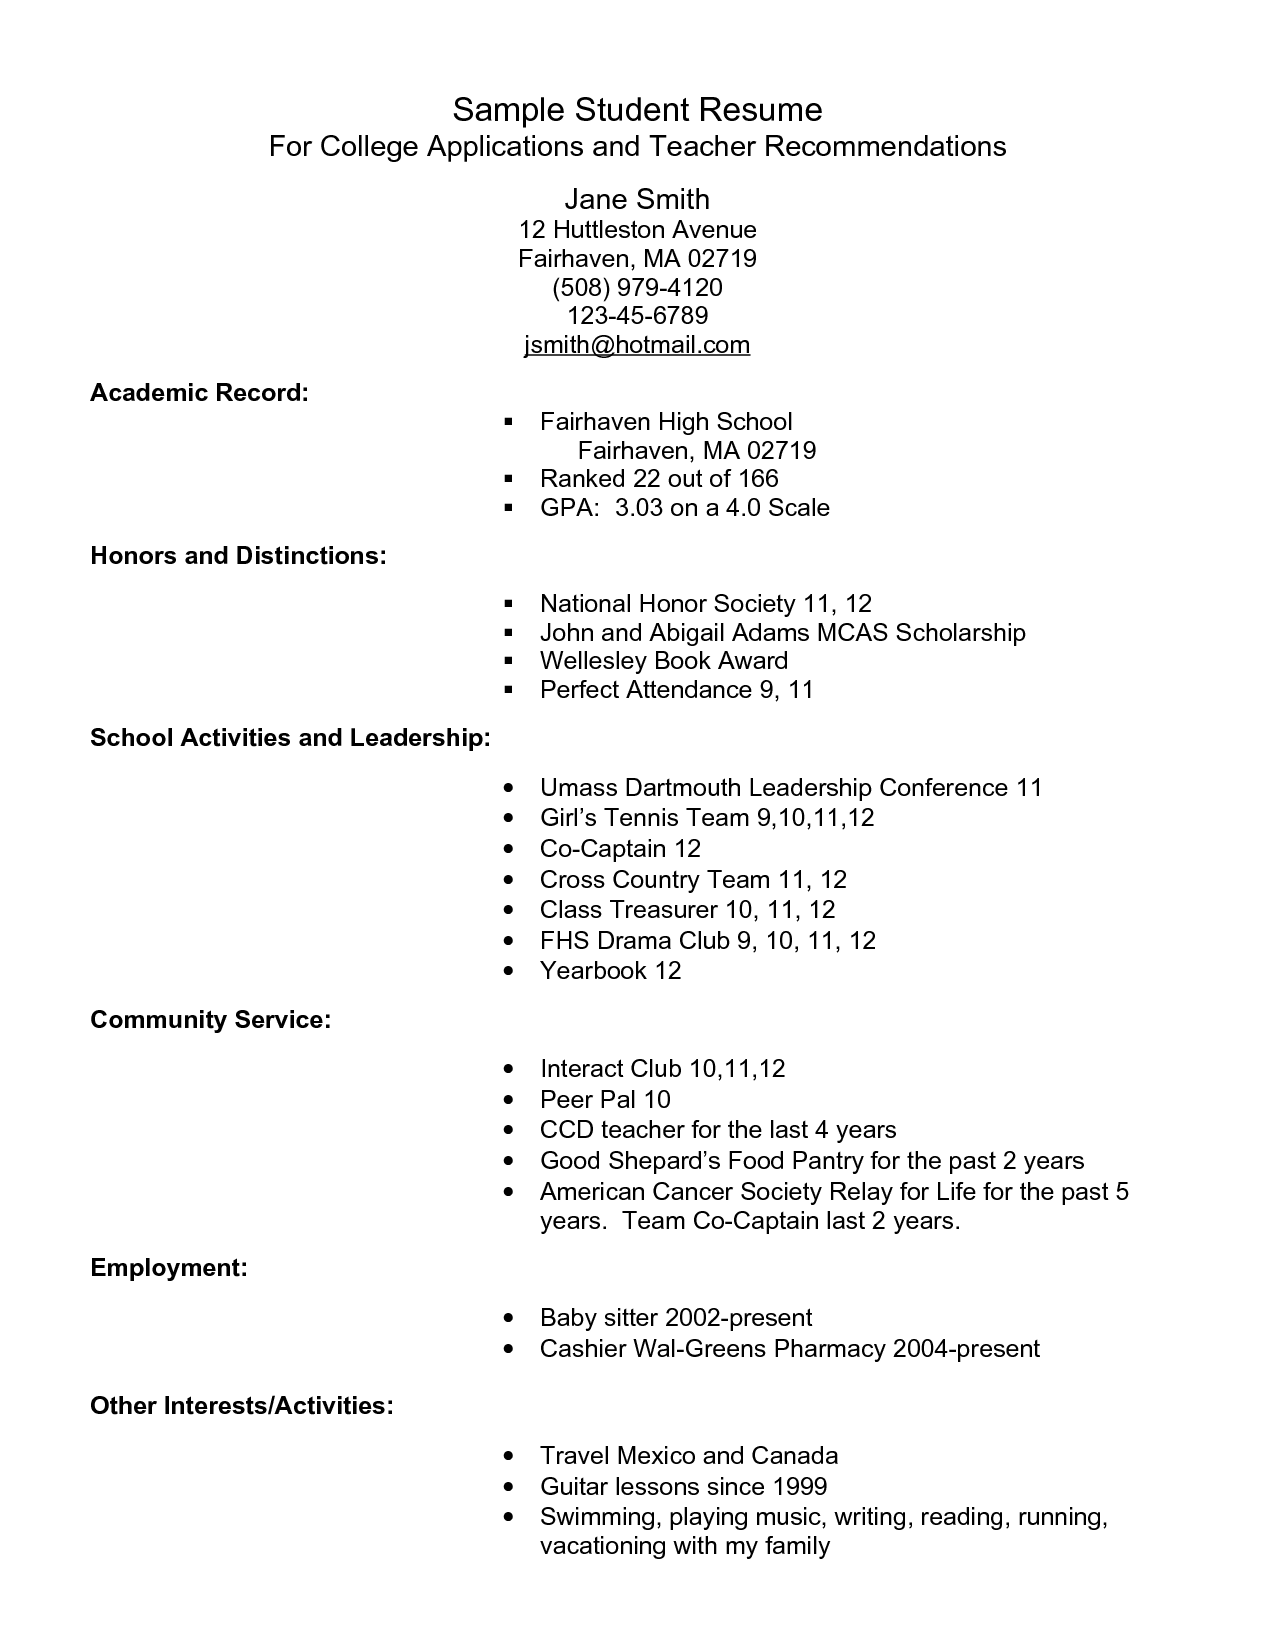 Example Resume For High School Students For College Applications Sample  Student Resume   PDF By Smapdi59  How To Write A Resume Resume